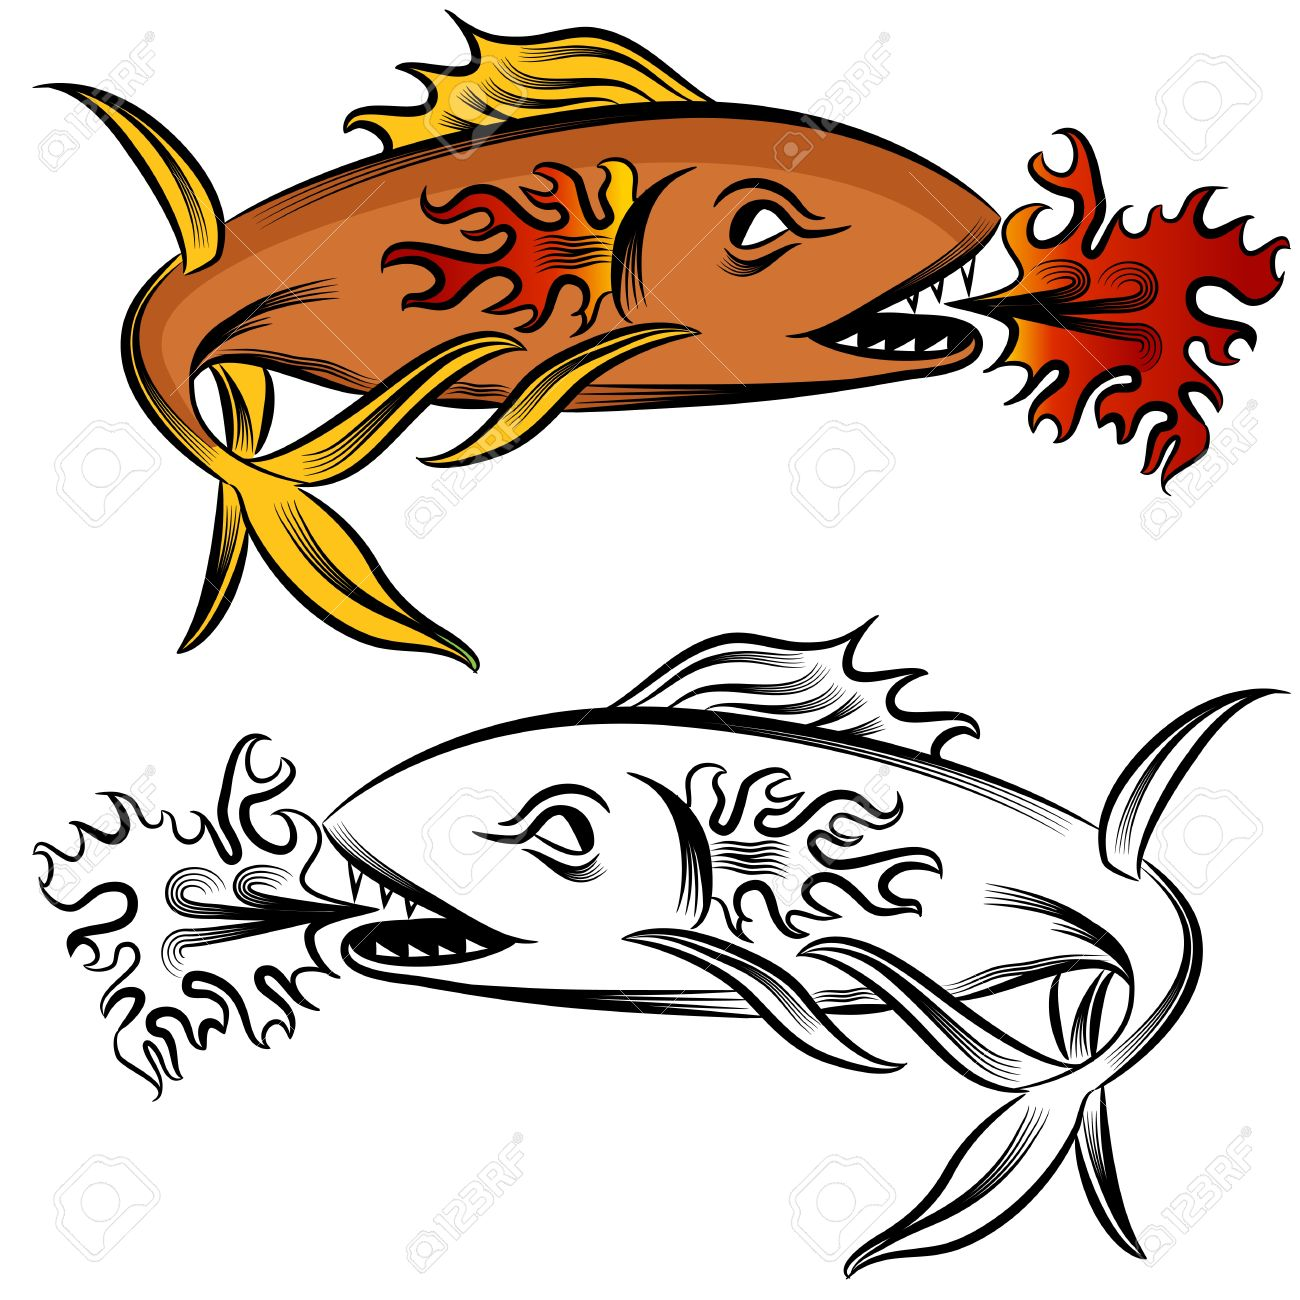 An Image Of A Fire Fish Drawing. Royalty Free Cliparts, Vectors.